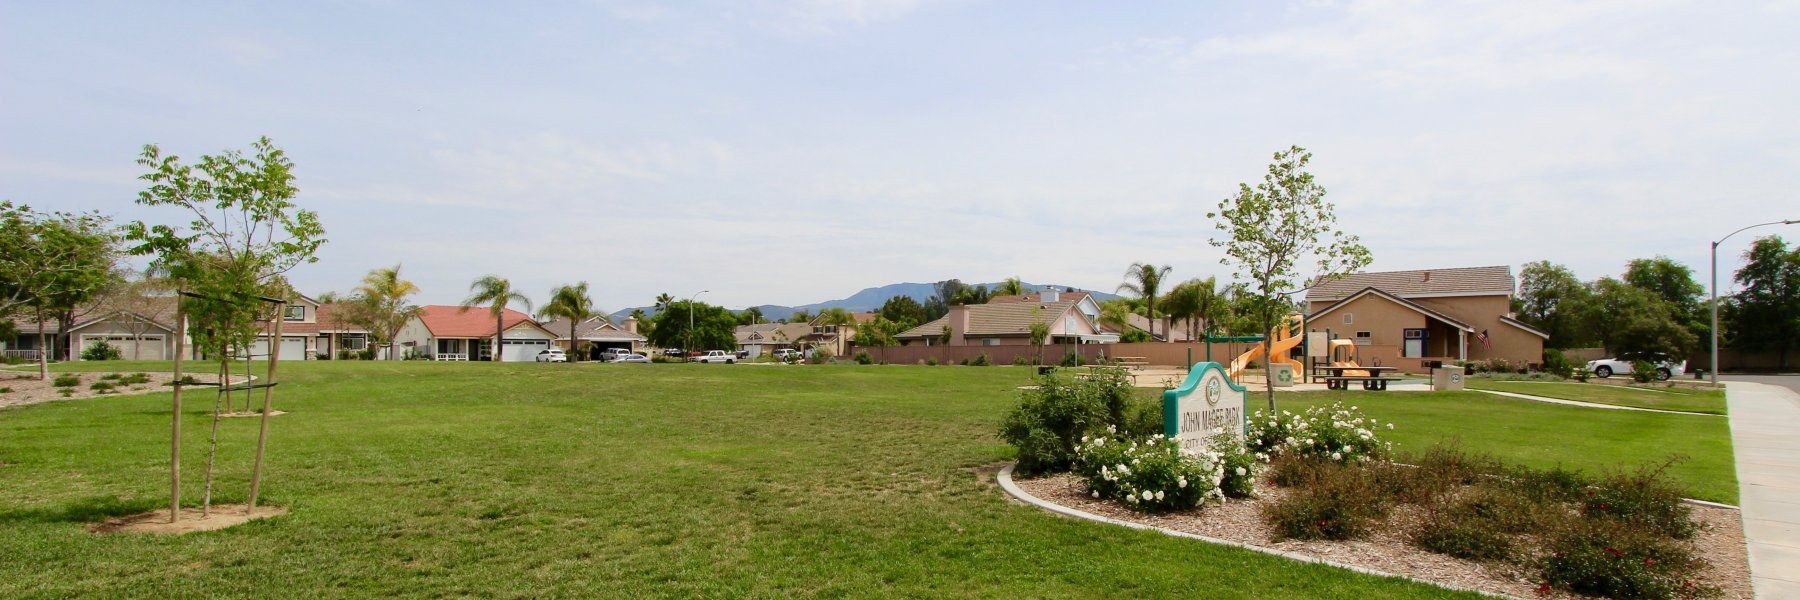 Veranda is a community of homes in Temecula California